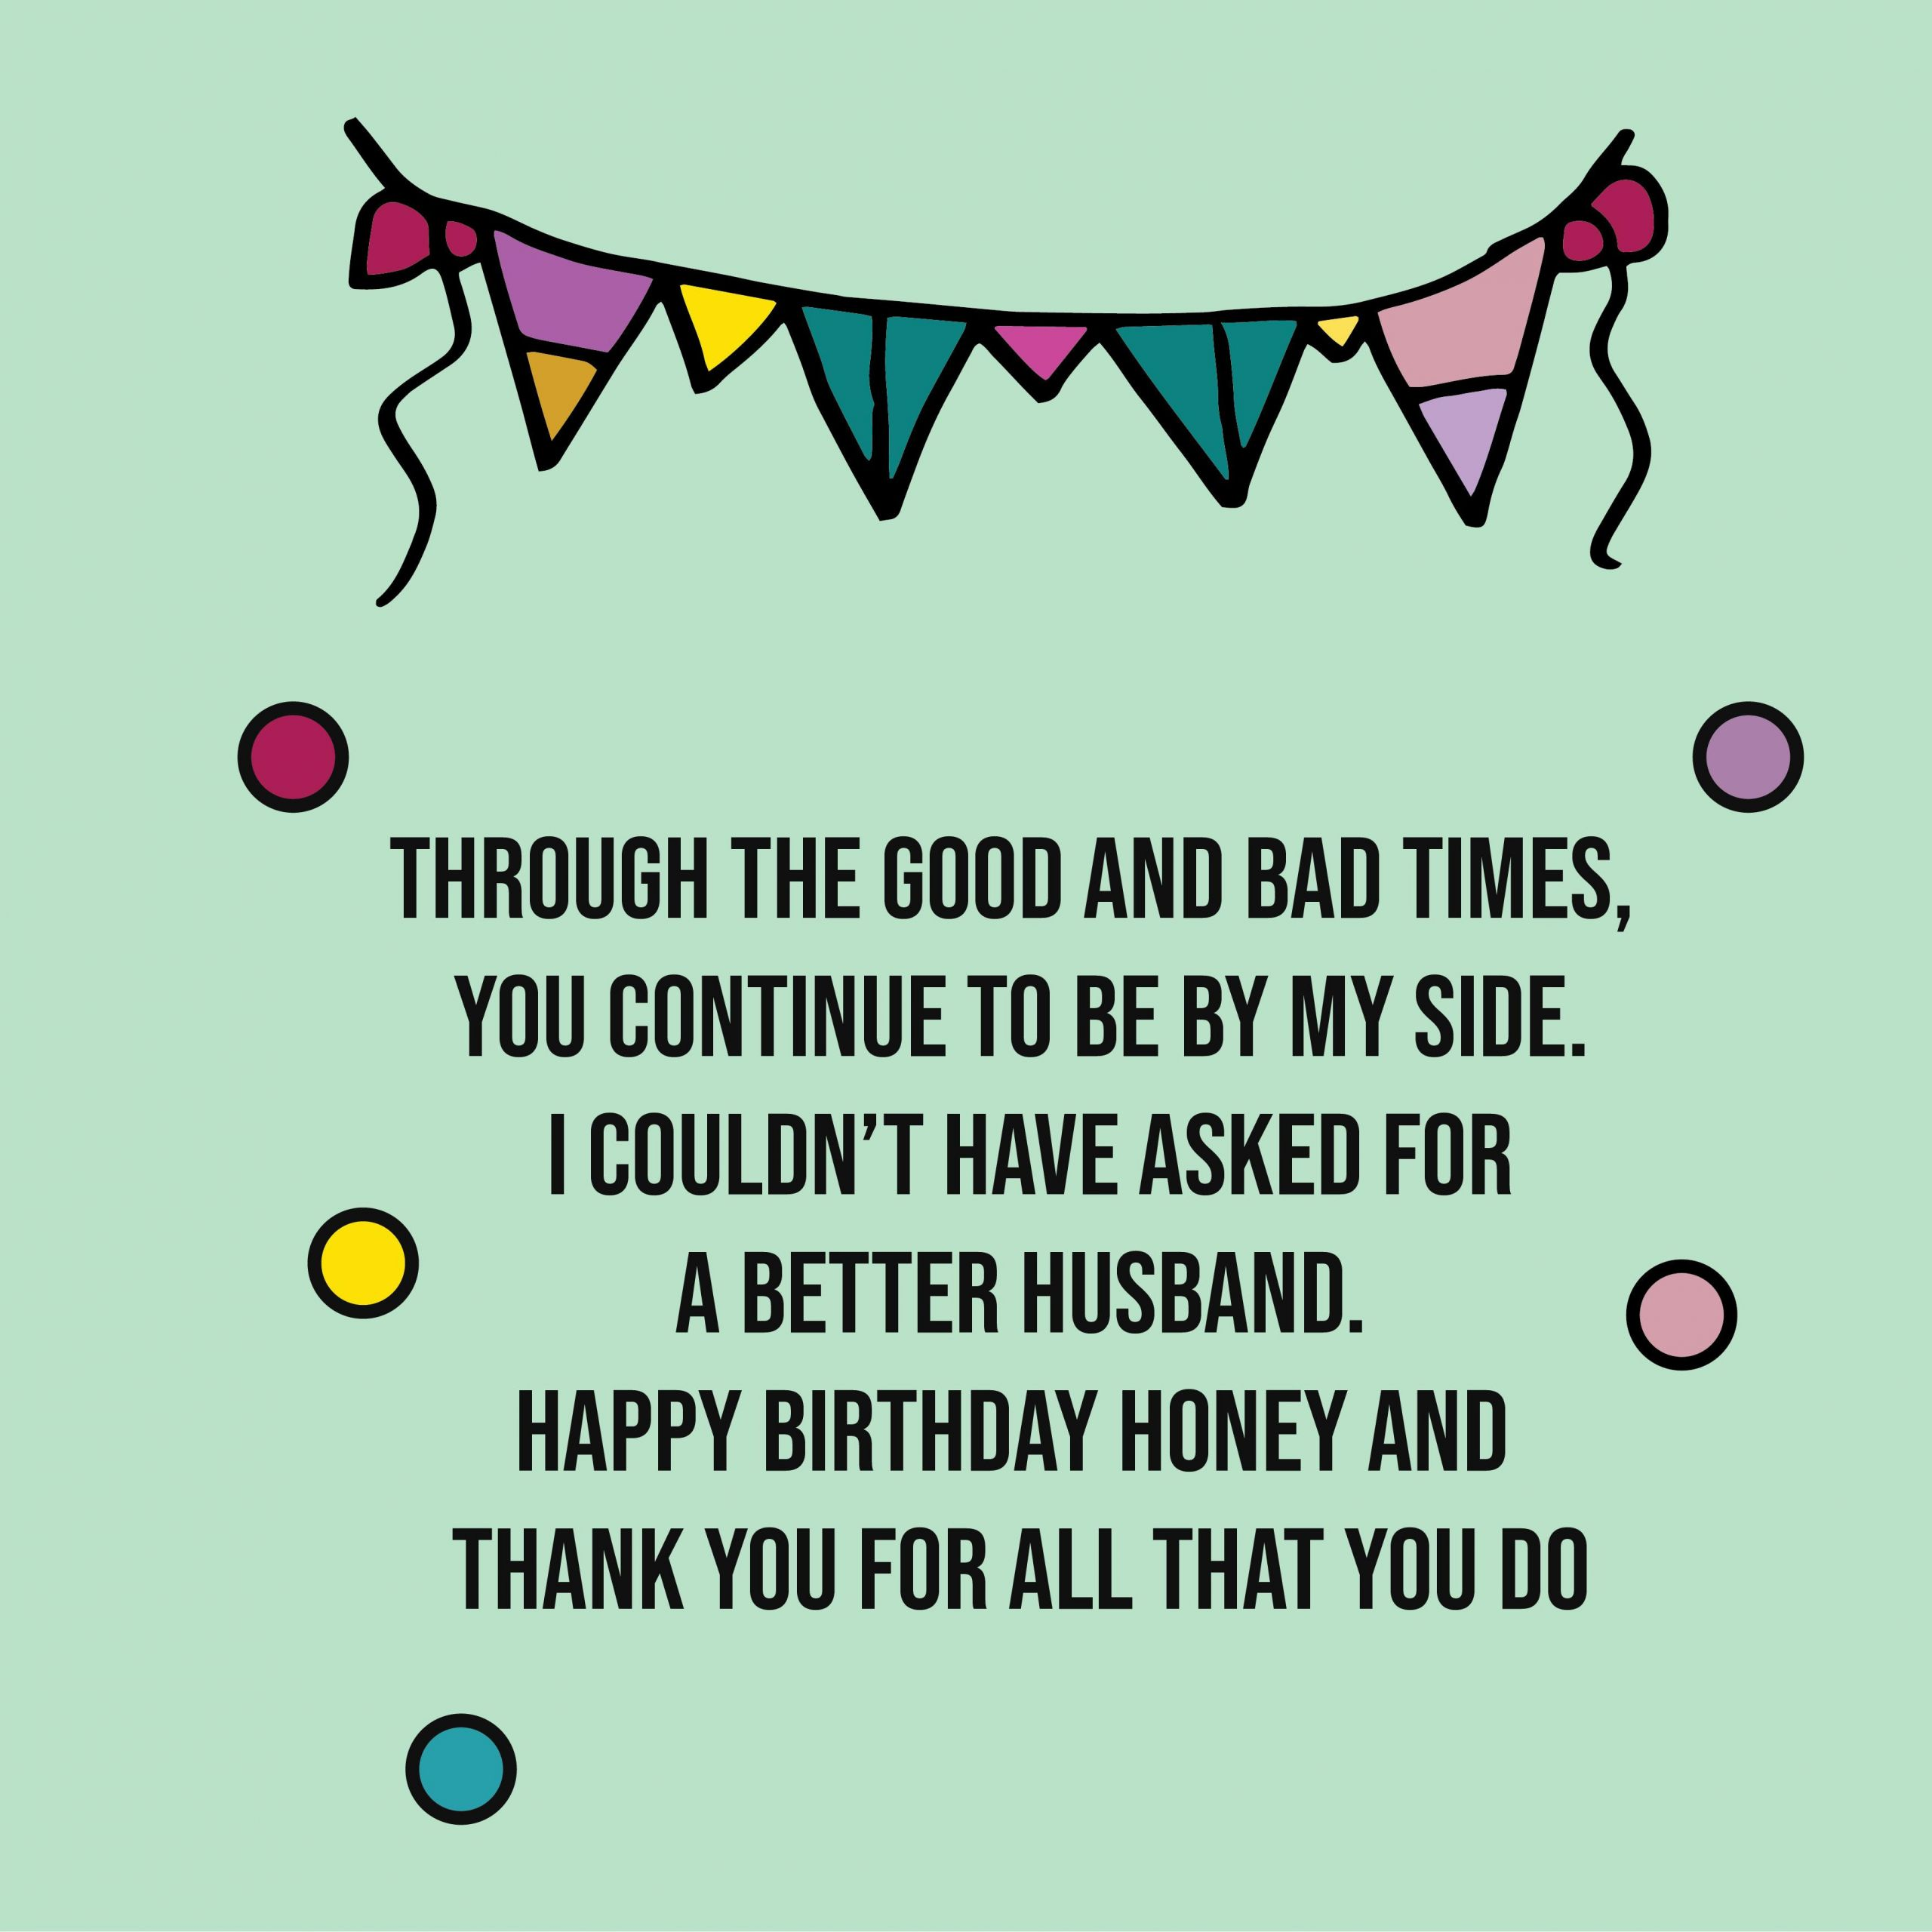 Best Birthday Wishes For Husband  The 180 Happy Birthday to my Husband – Top Happy Birthday